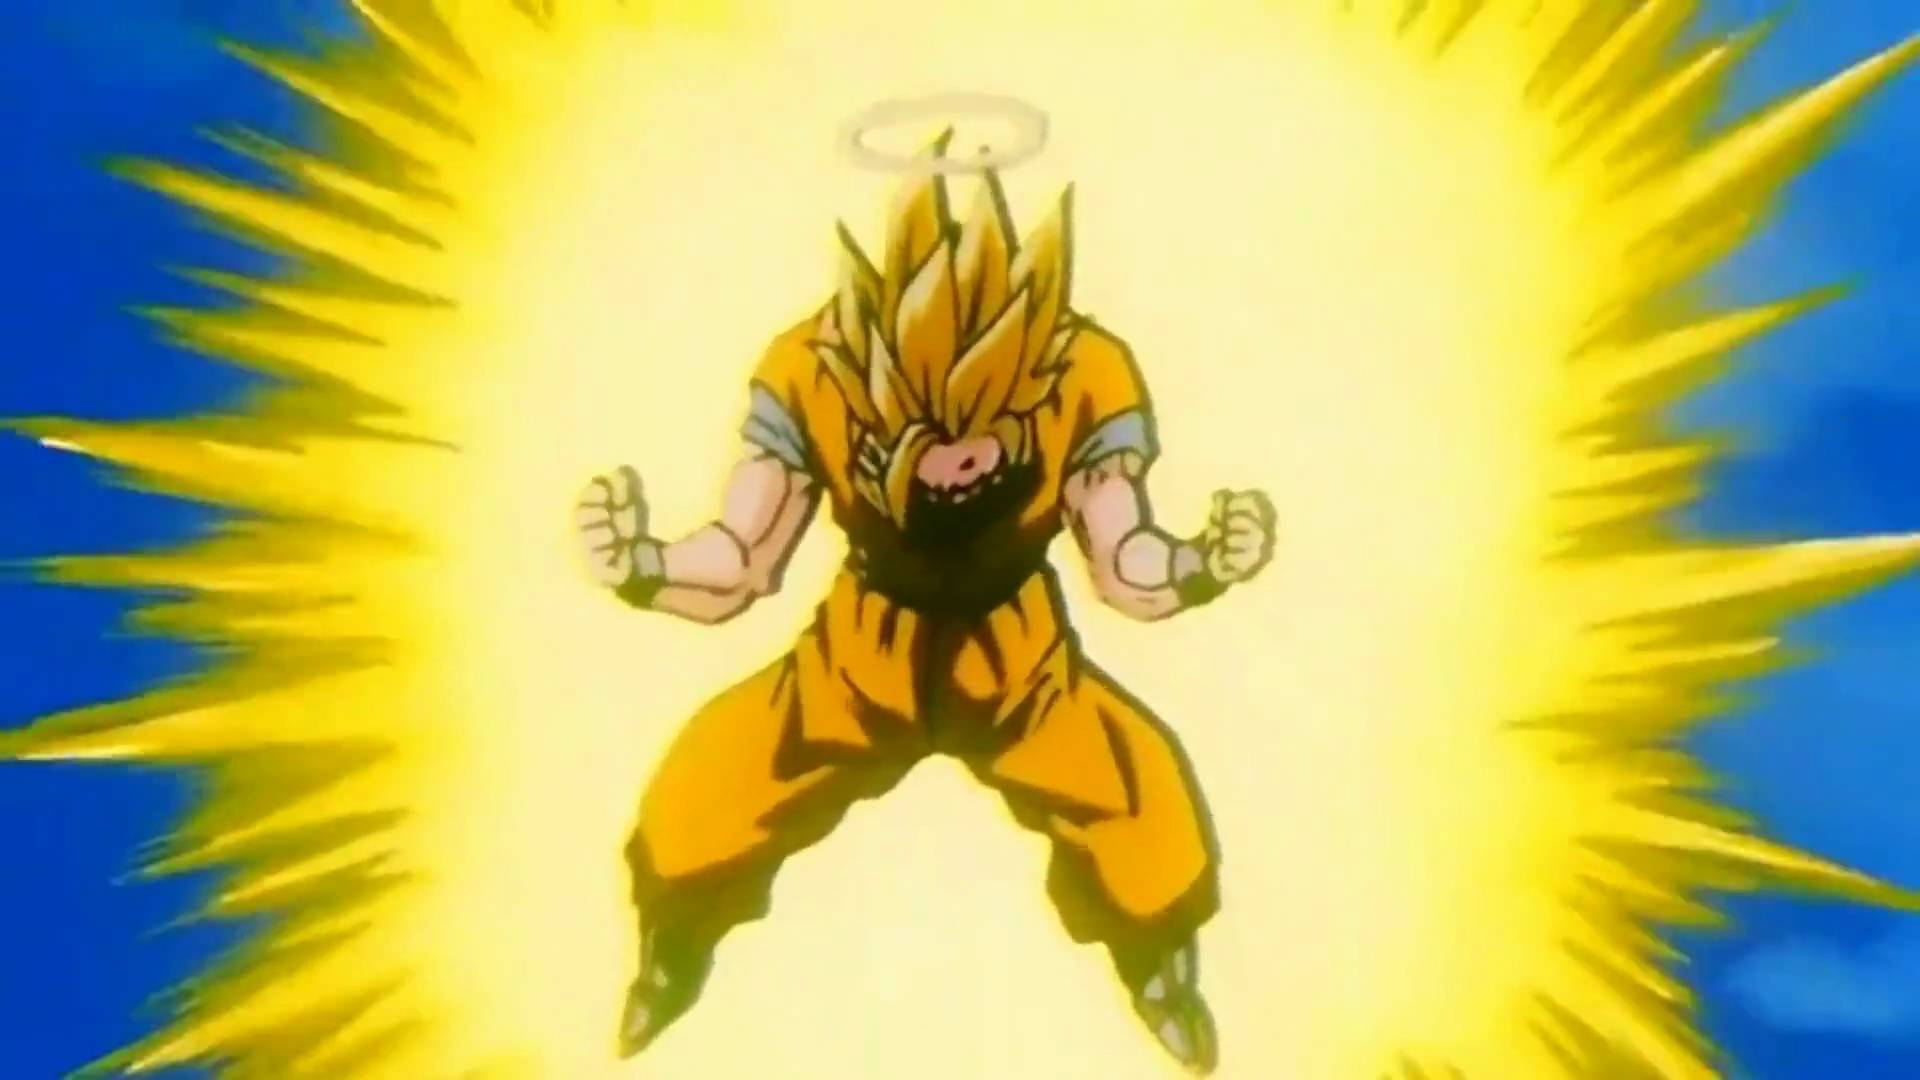 Goku Super Saiyan 3 Wallpapers